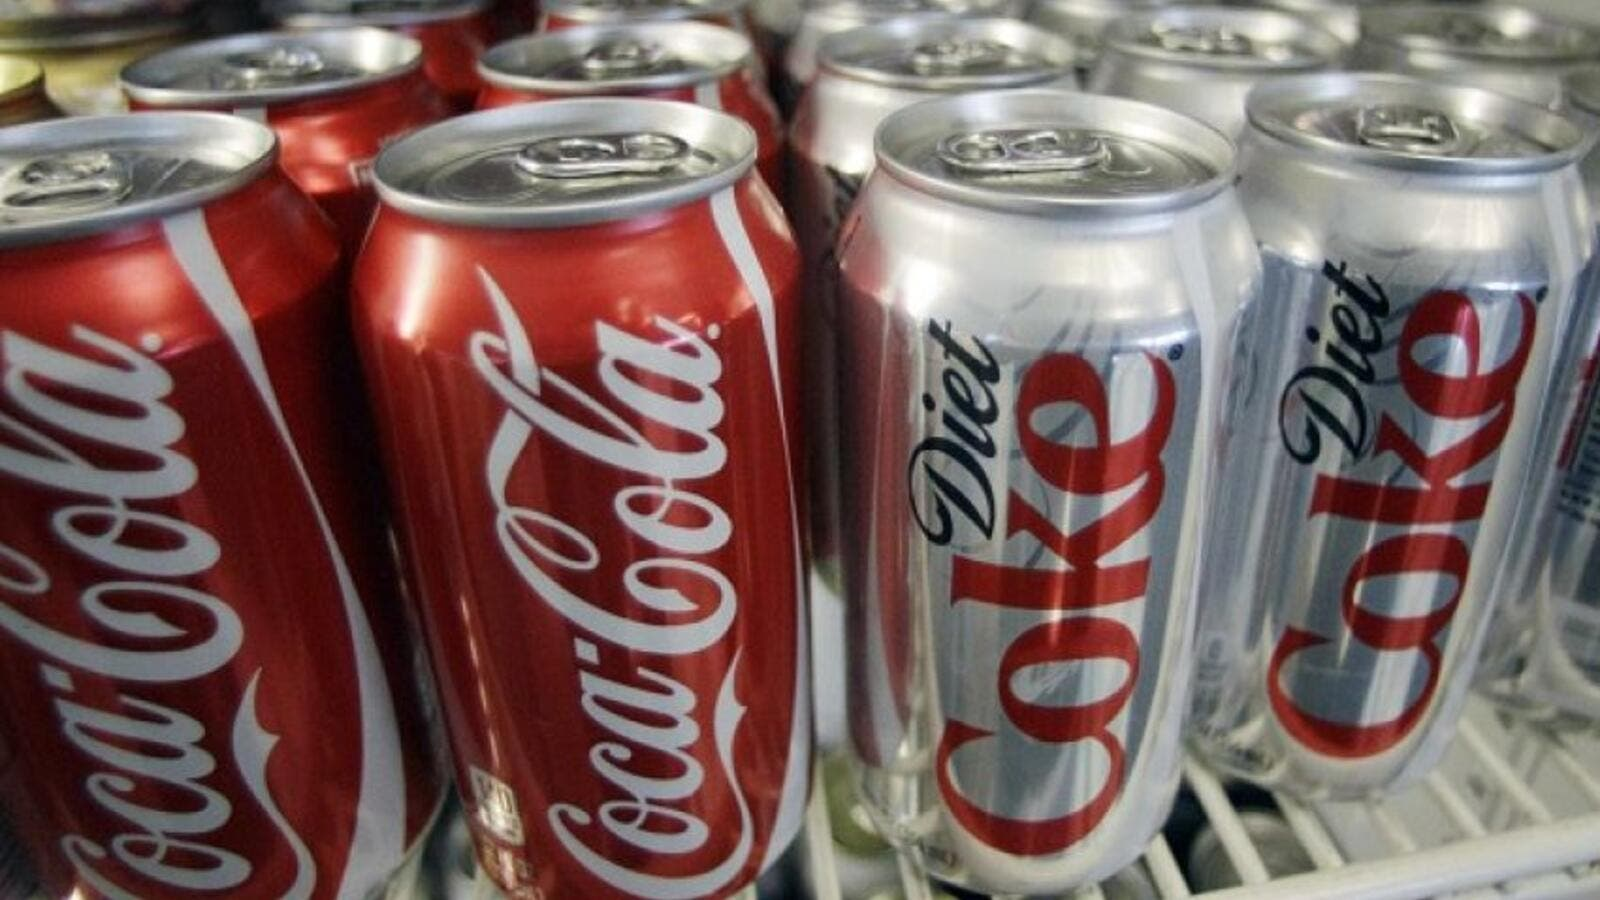 In this opinion piece, Vitaliy Katsenelson explains why some under-performing companies, like Coca-Cola, still have good stocks, while the opposite is not always true. (File photo)